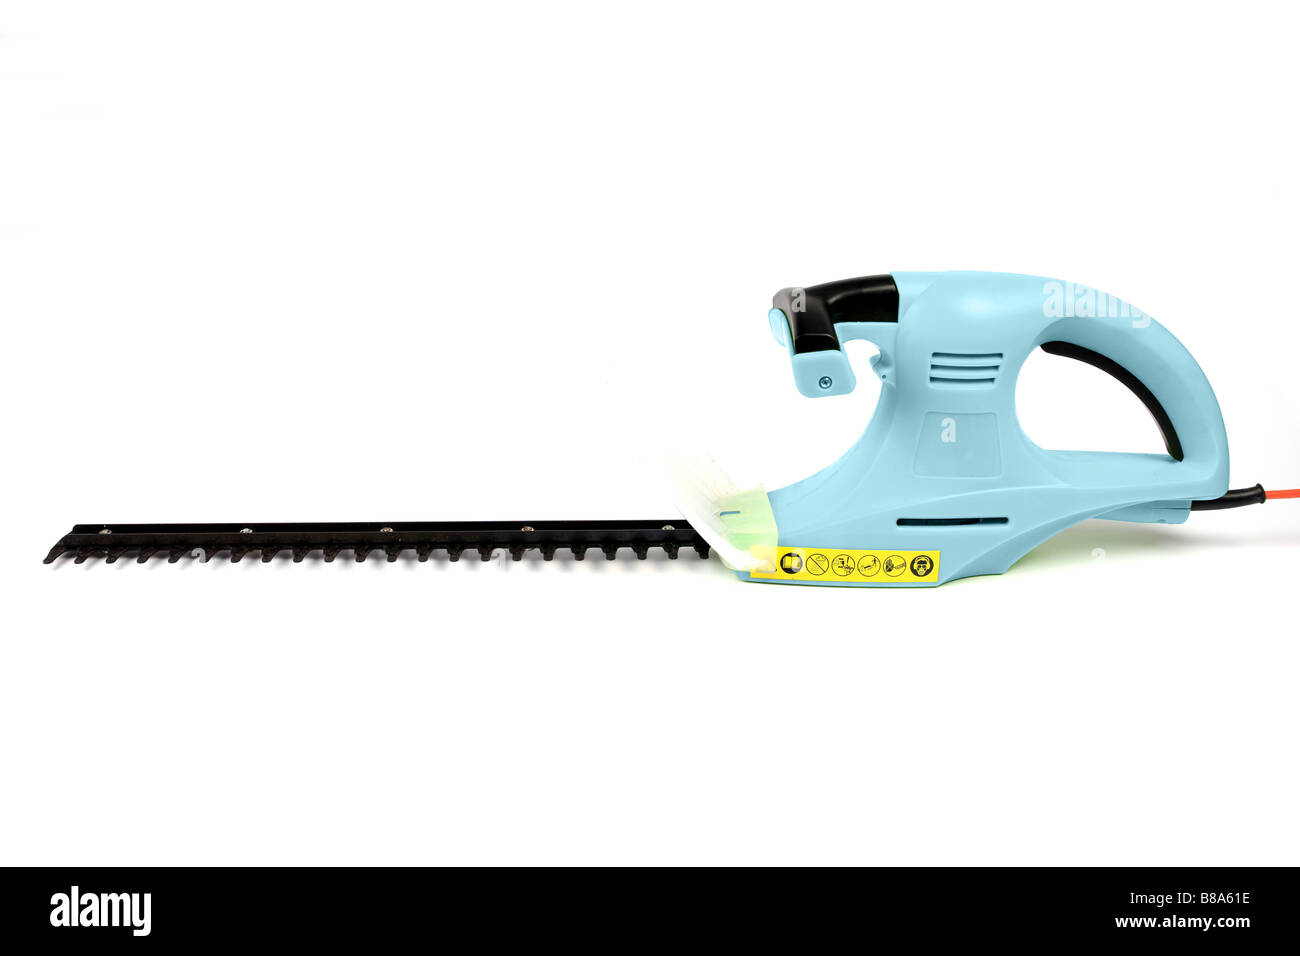 Electric garden hedge trimmer with its cutting blade on show set against a white background - Stock Image